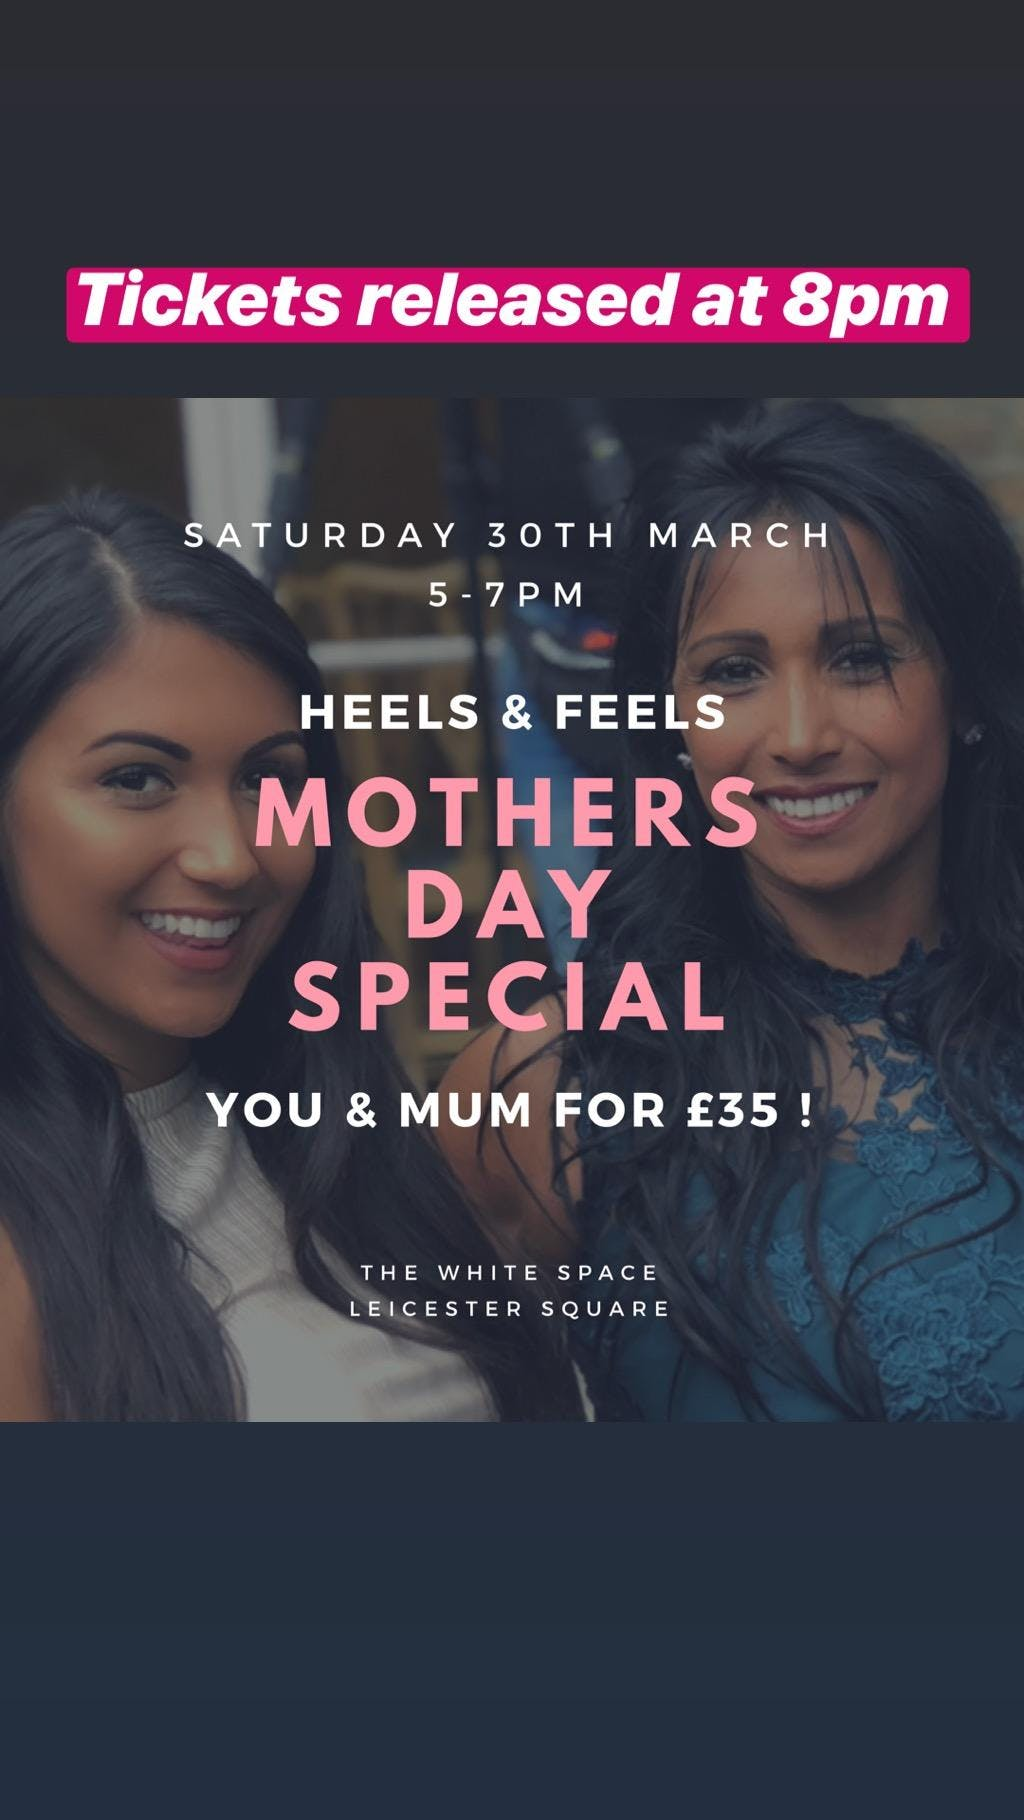 Heels & Feels: Mother's Day Special